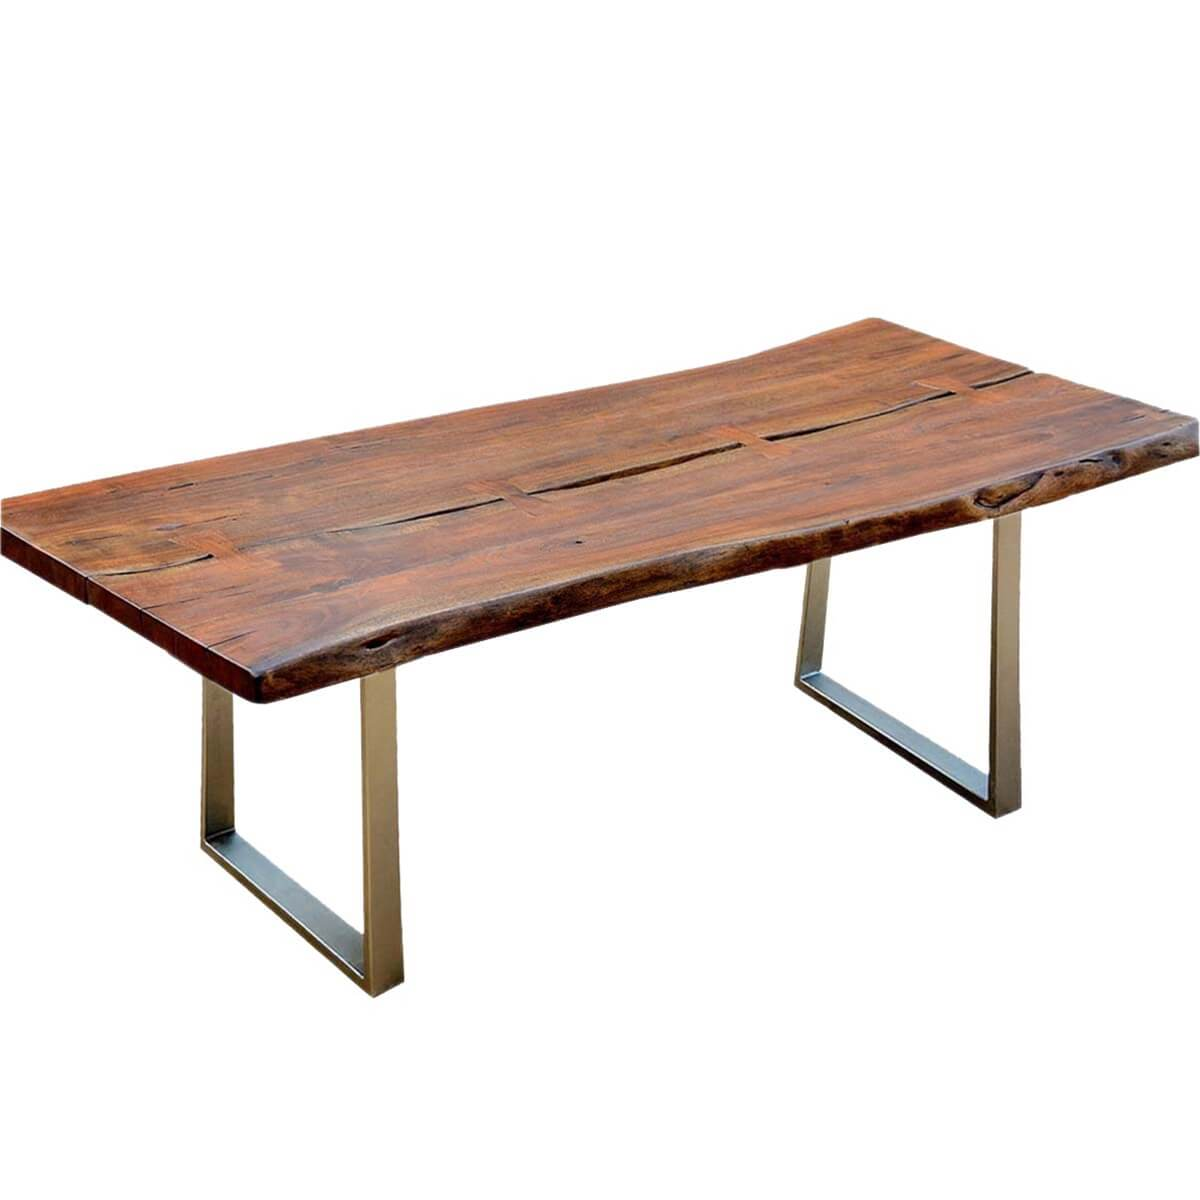 Live edge acacia wood iron rustic large dining table for Dinner table wood